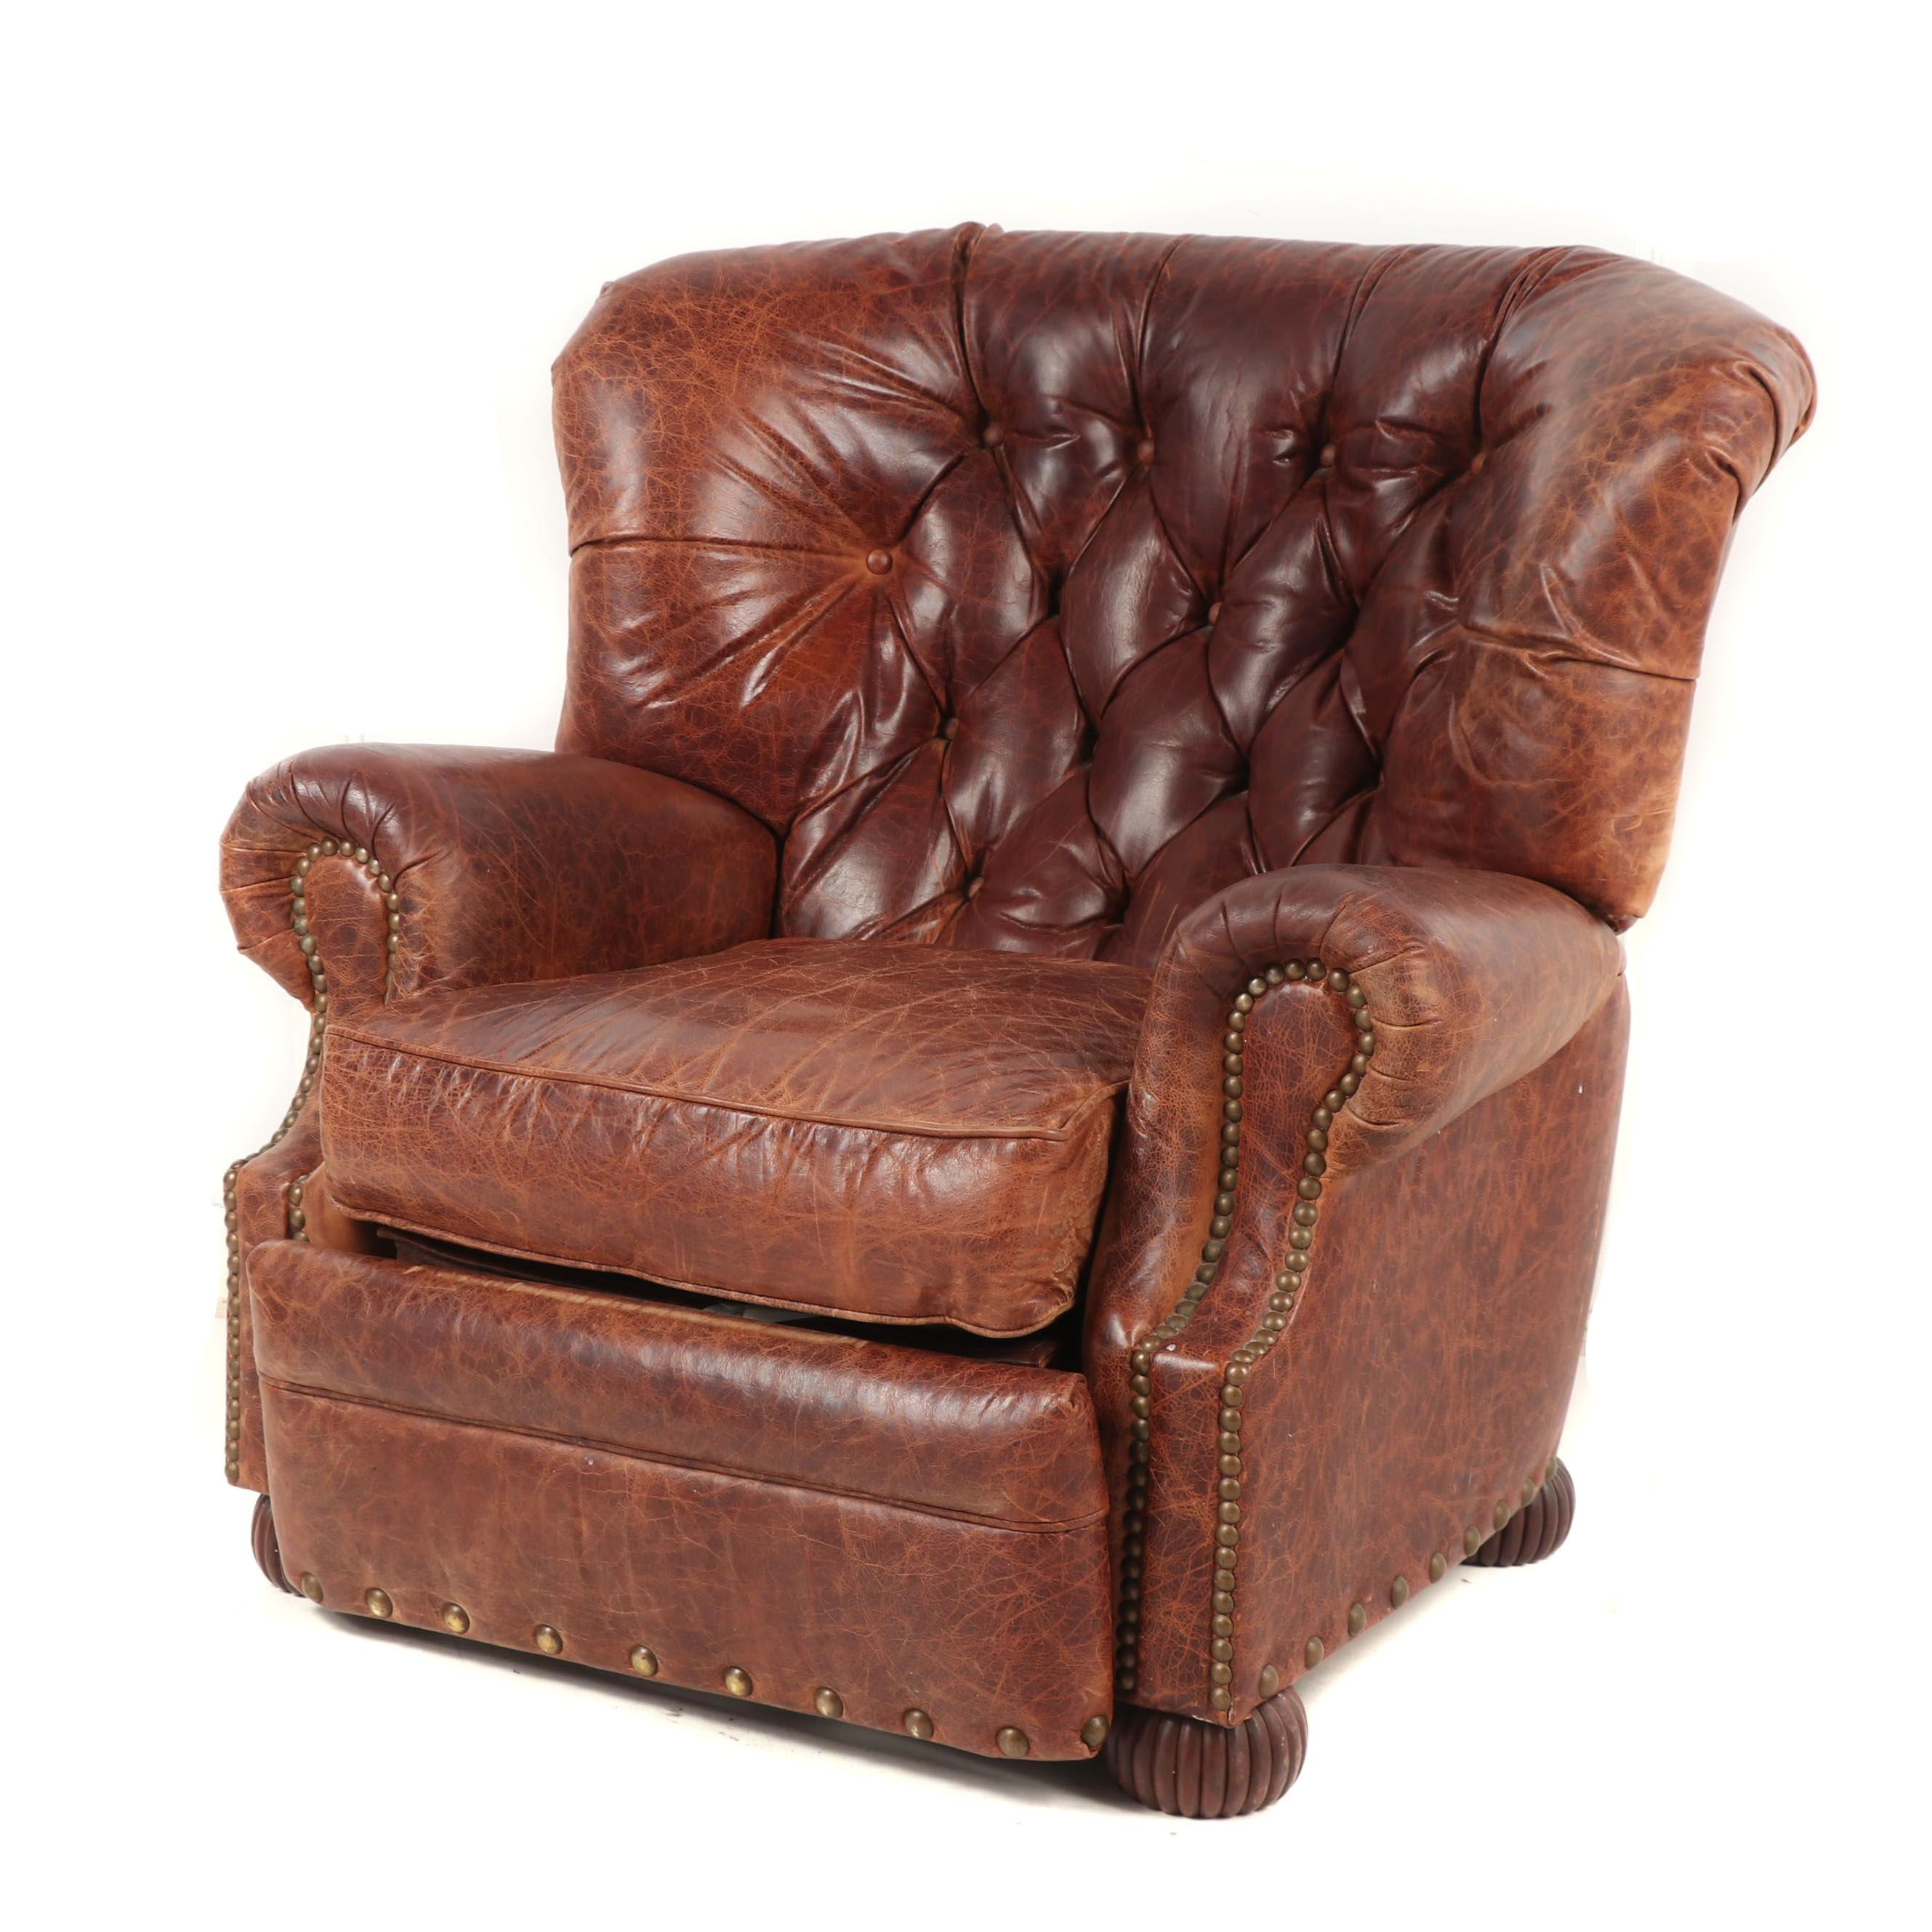 Contemporary Bradington Young Leather Upholstered Recliner